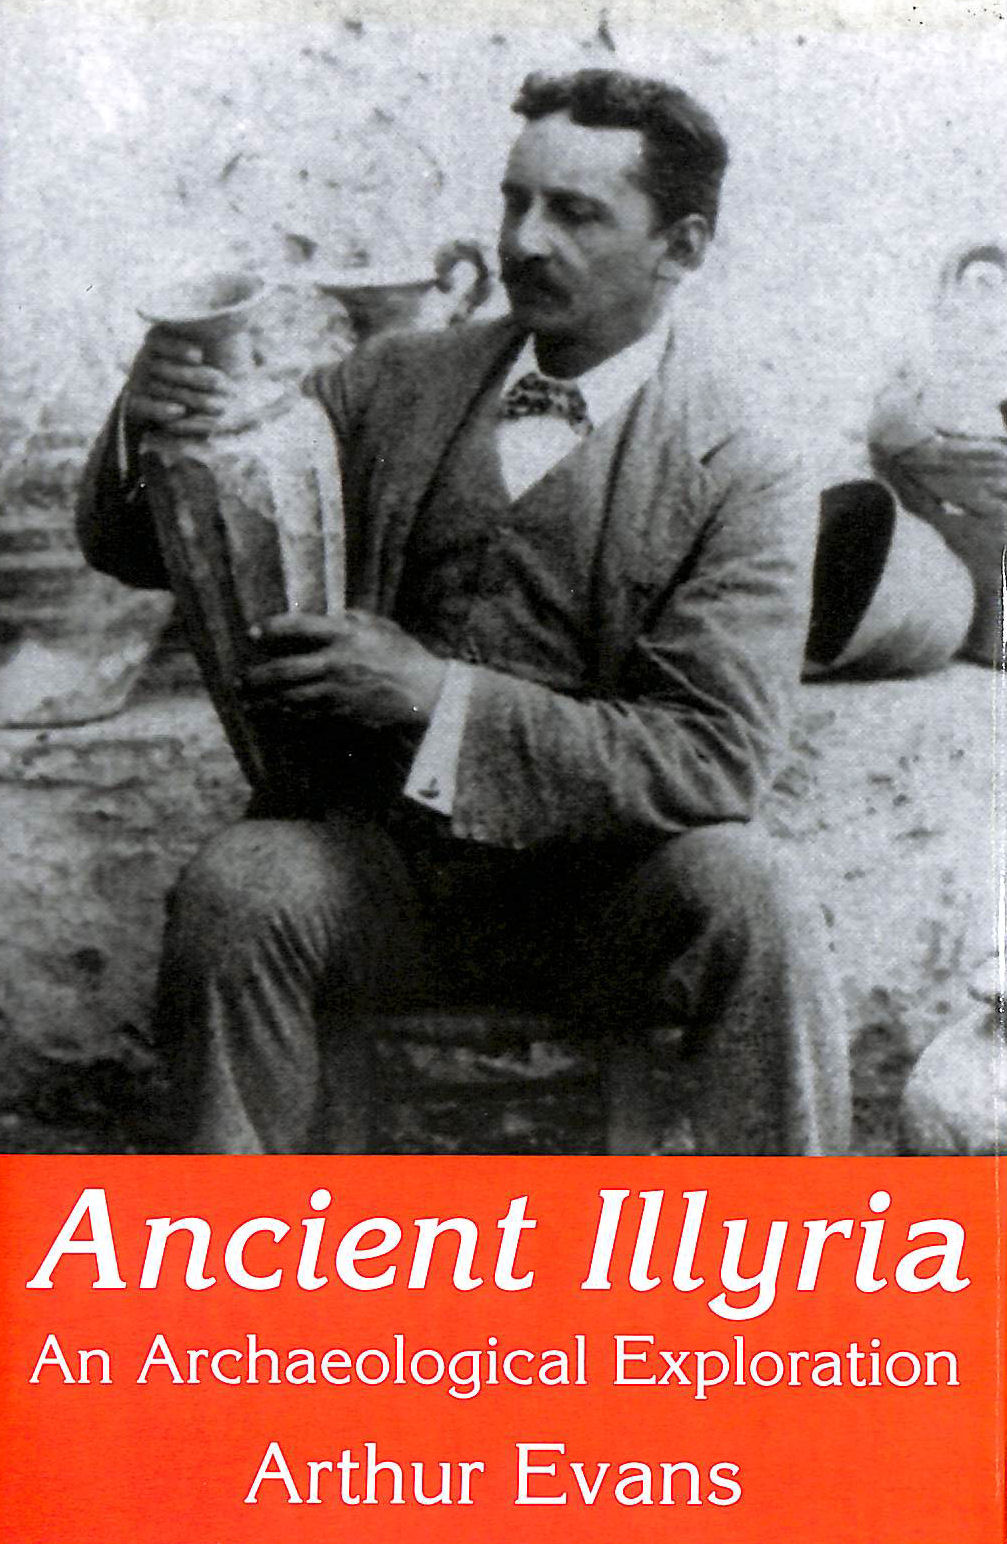 Image for Ancient Illyria: An Archaeological Exploration